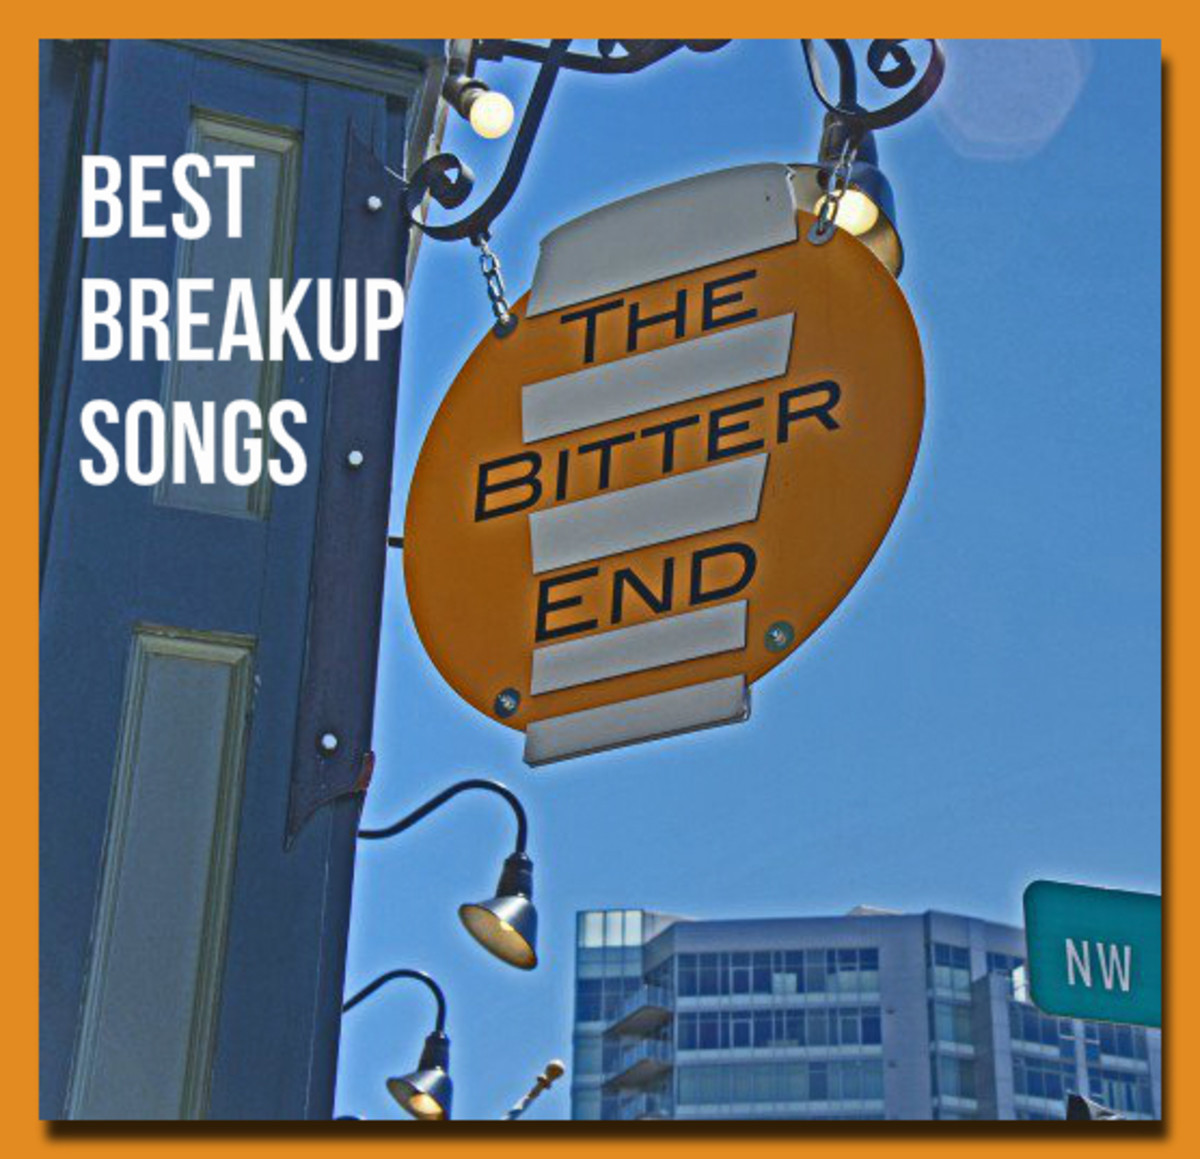 131 Songs About Breakups, Heartbreak, and Divorce